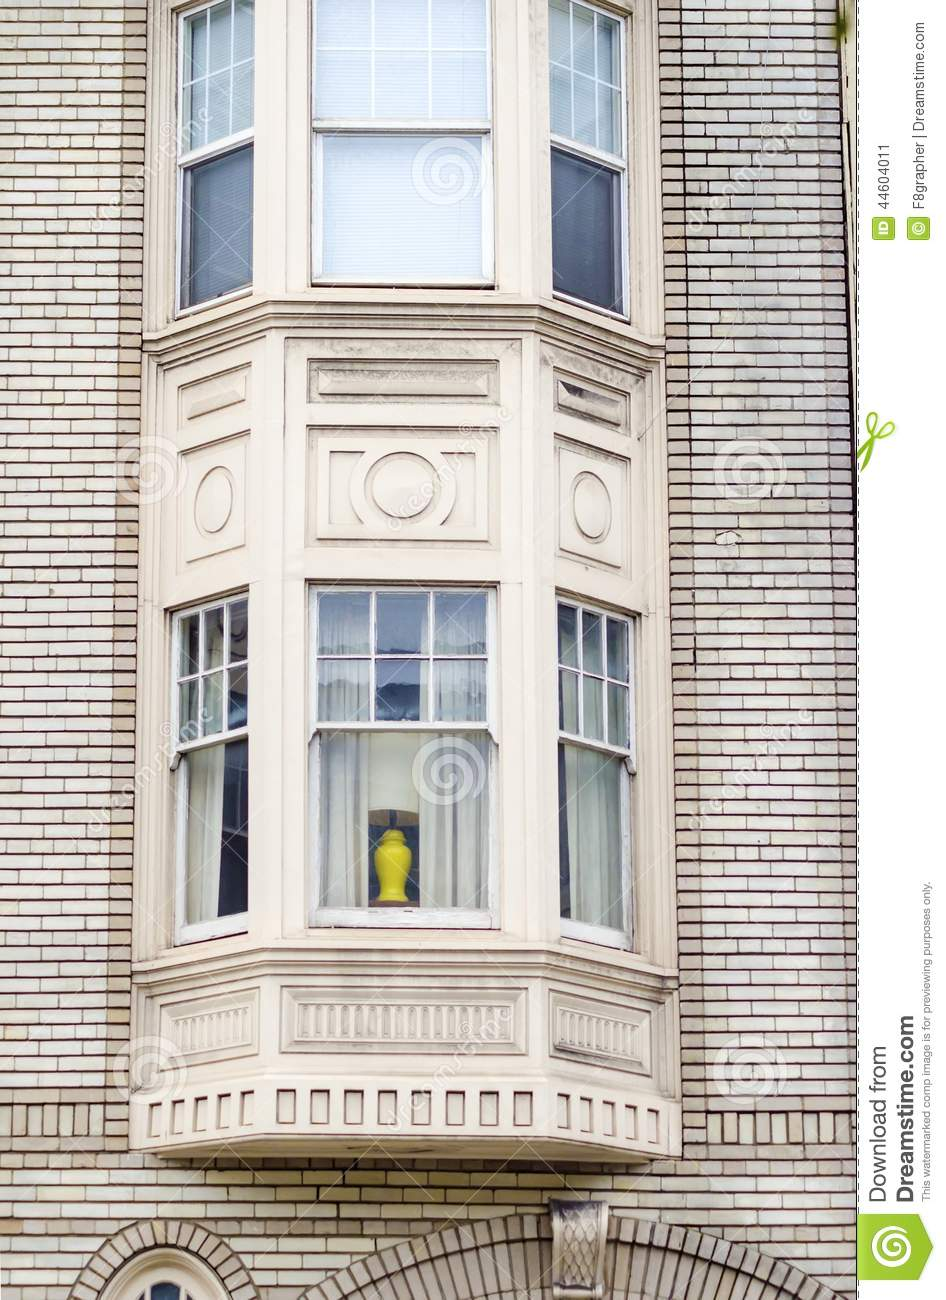 Architecture Exterior: San Francisco Architecture Stock Image. Image Of Landmark